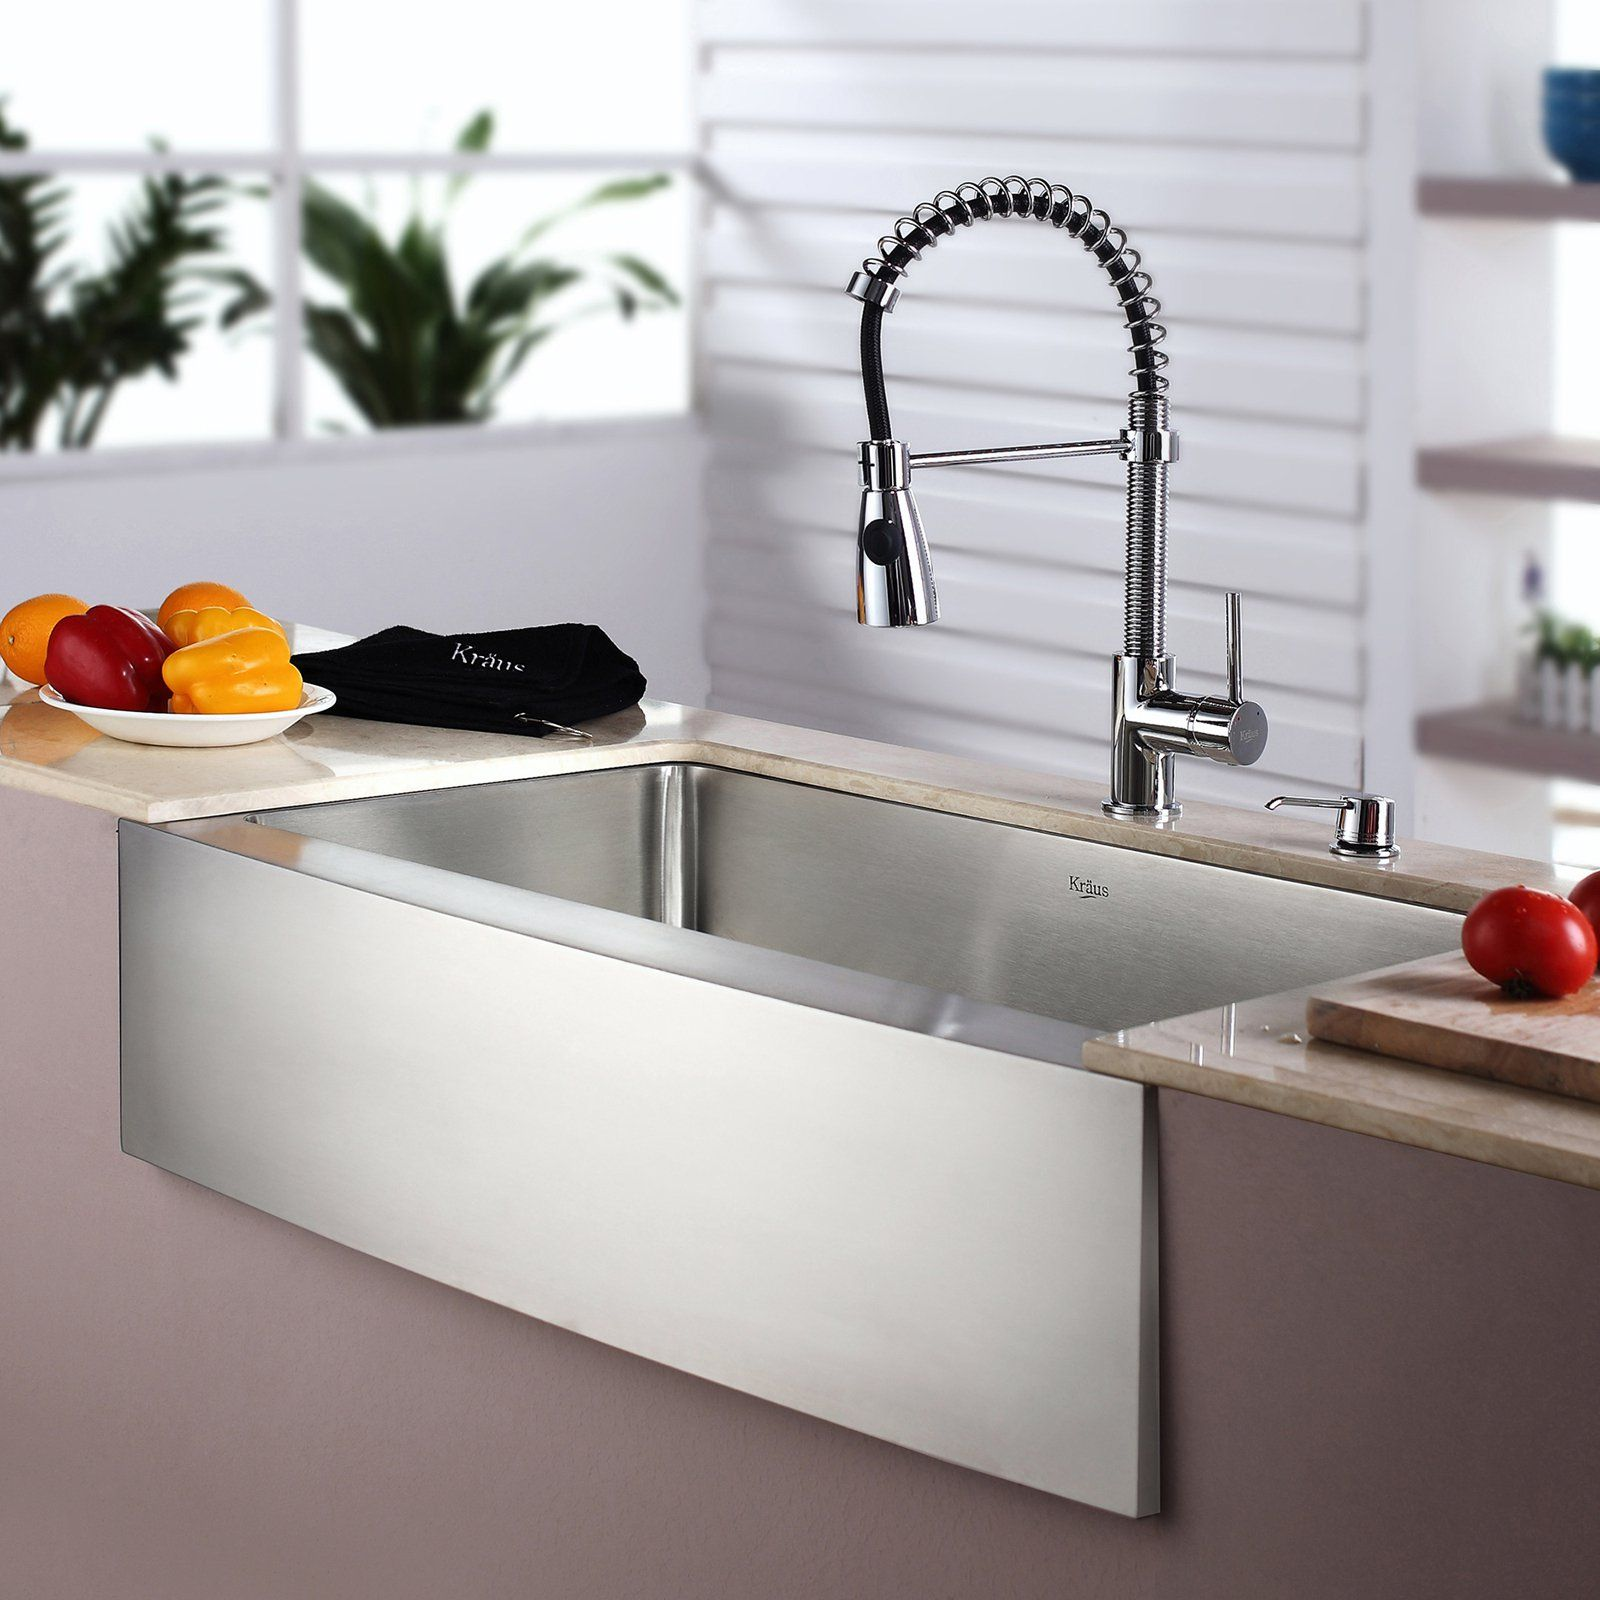 Kraus Single Basin Farmhouse Kitchen Sink with Faucet | Products ...